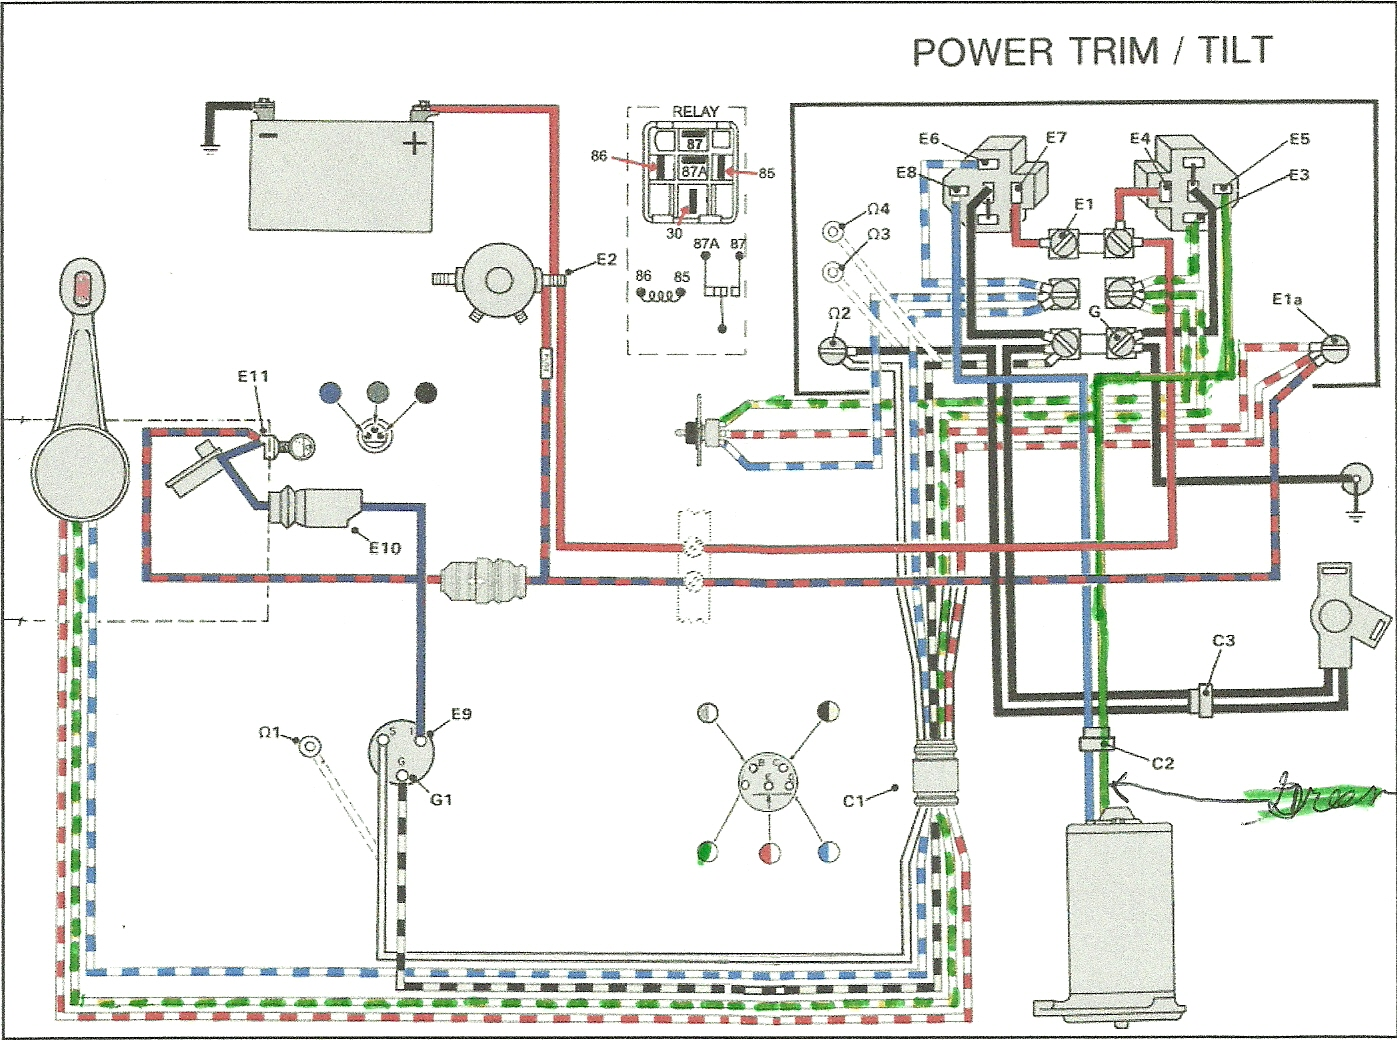 i bought a two wire power tilt unit for my 1990 50 horse evinrude here is a diagram of the relay circuit for evinrude 2 wire motor graphic